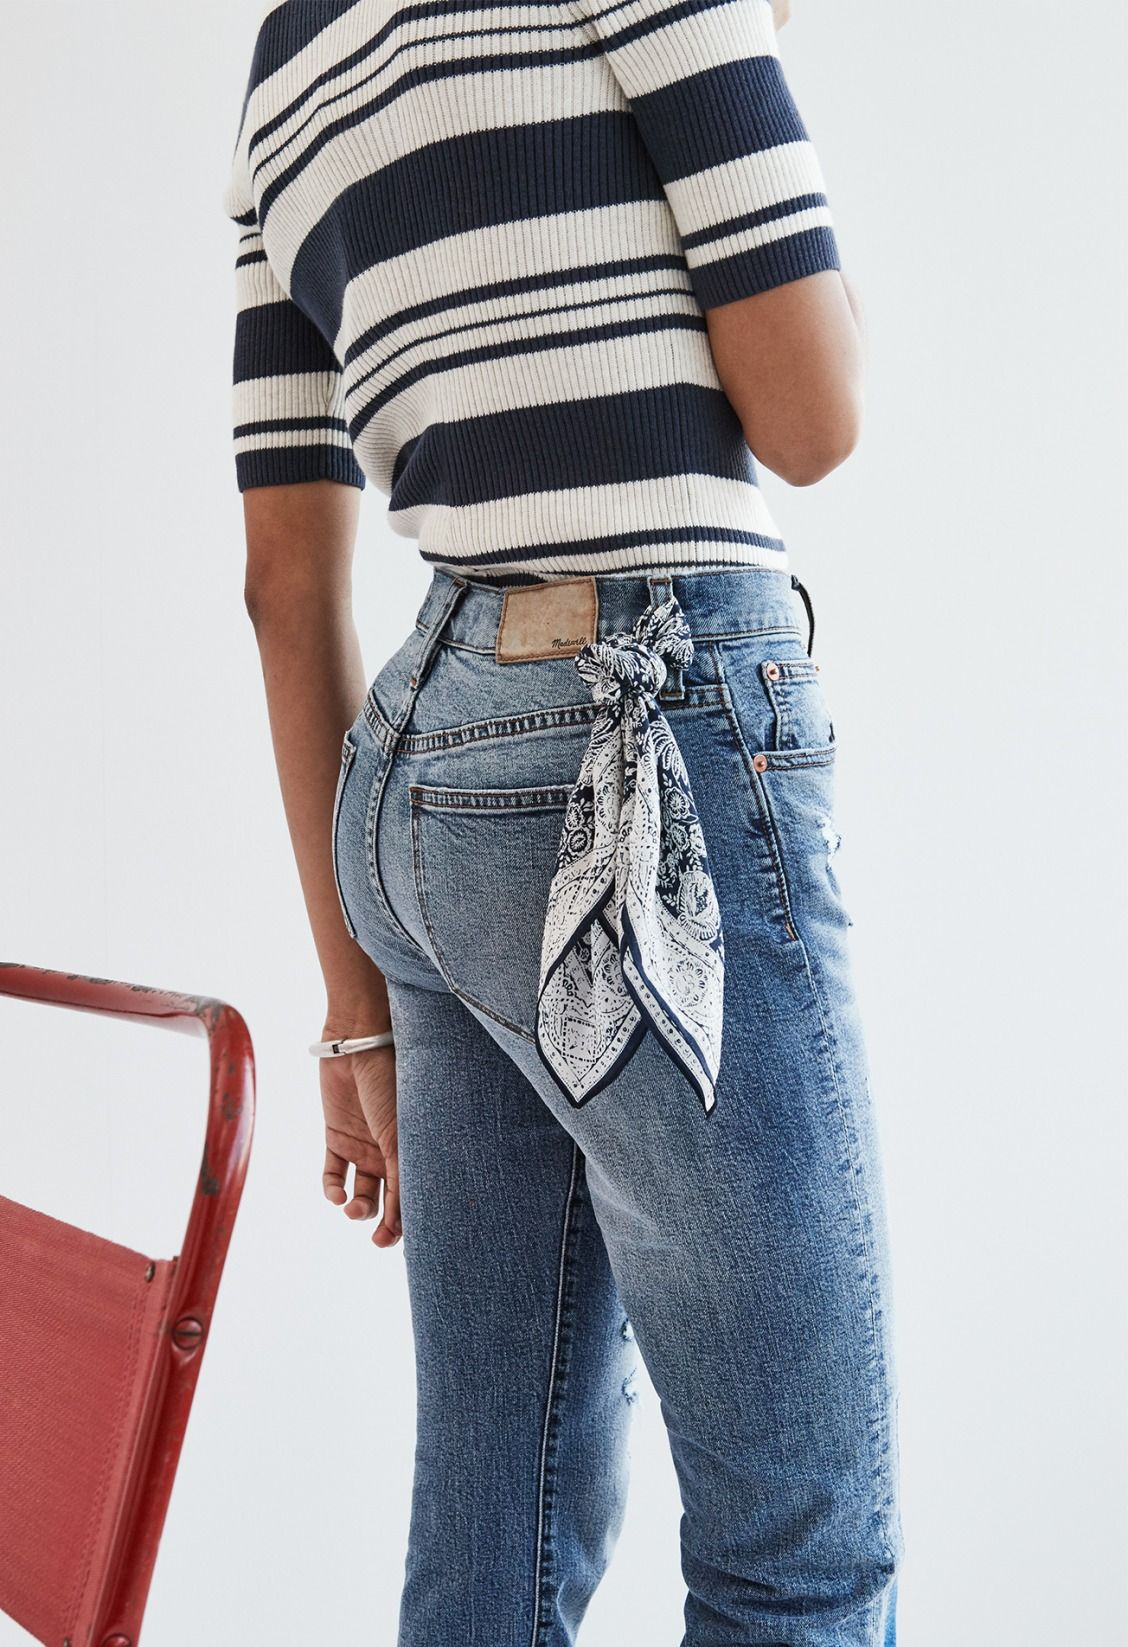 madewell cruiser straight crop jeans worn with the ribbed sweater ...